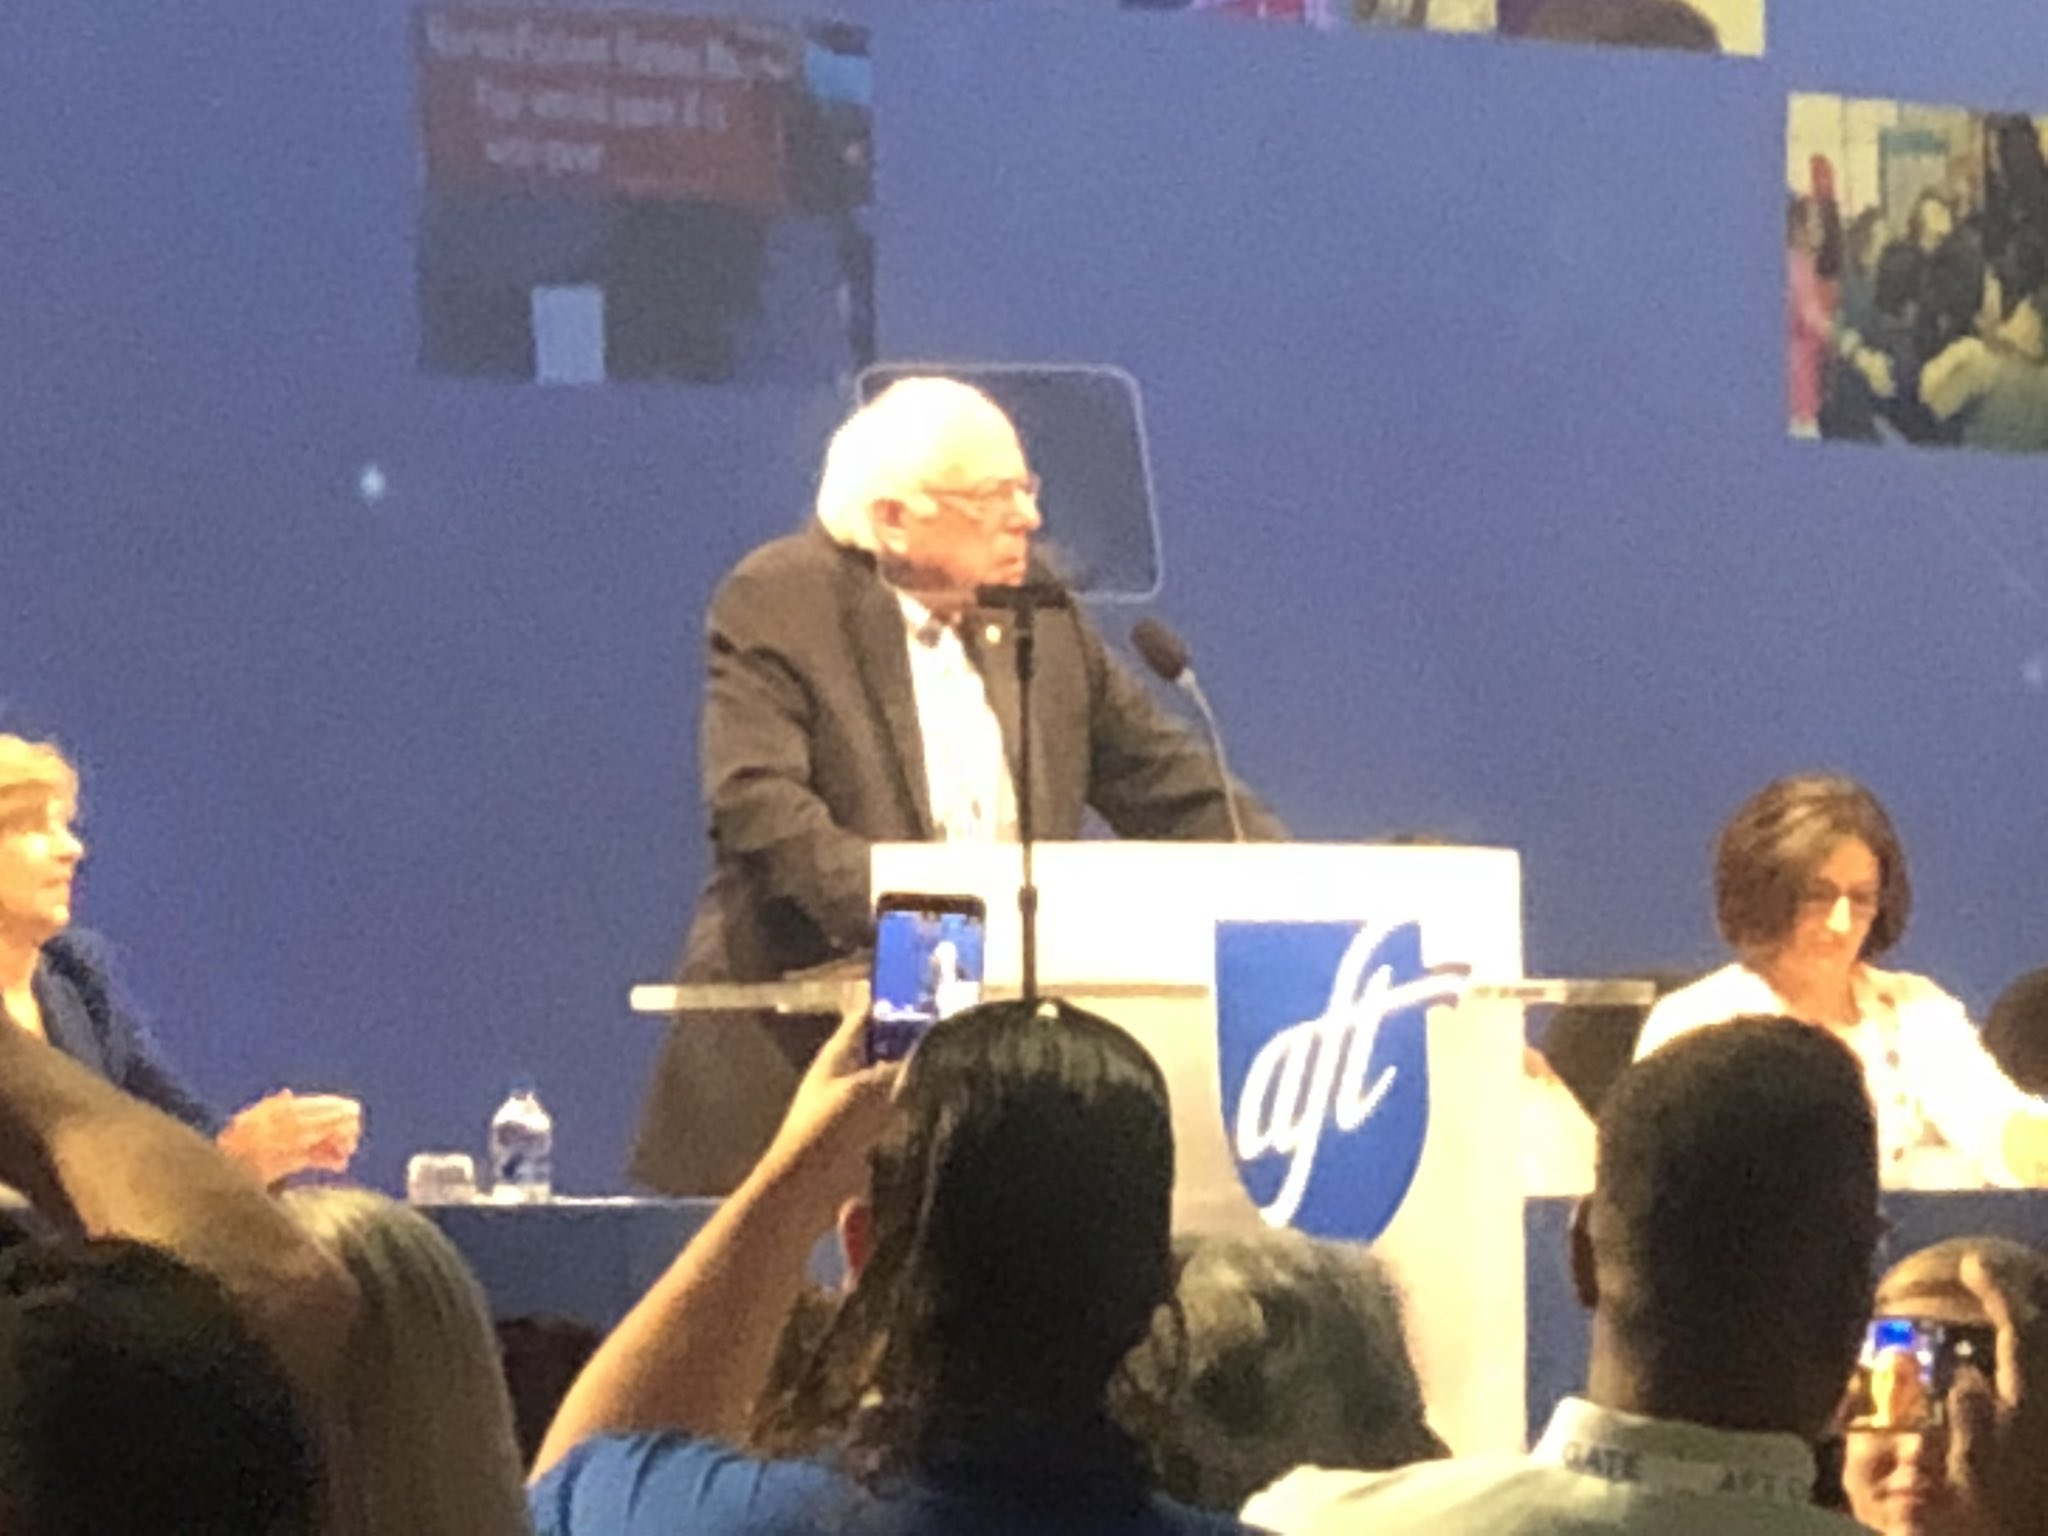 @SenSanders Thanking public school teachers for the work we have done. #IamAFT the Bern is real. https://t.co/H1zS50kZMf